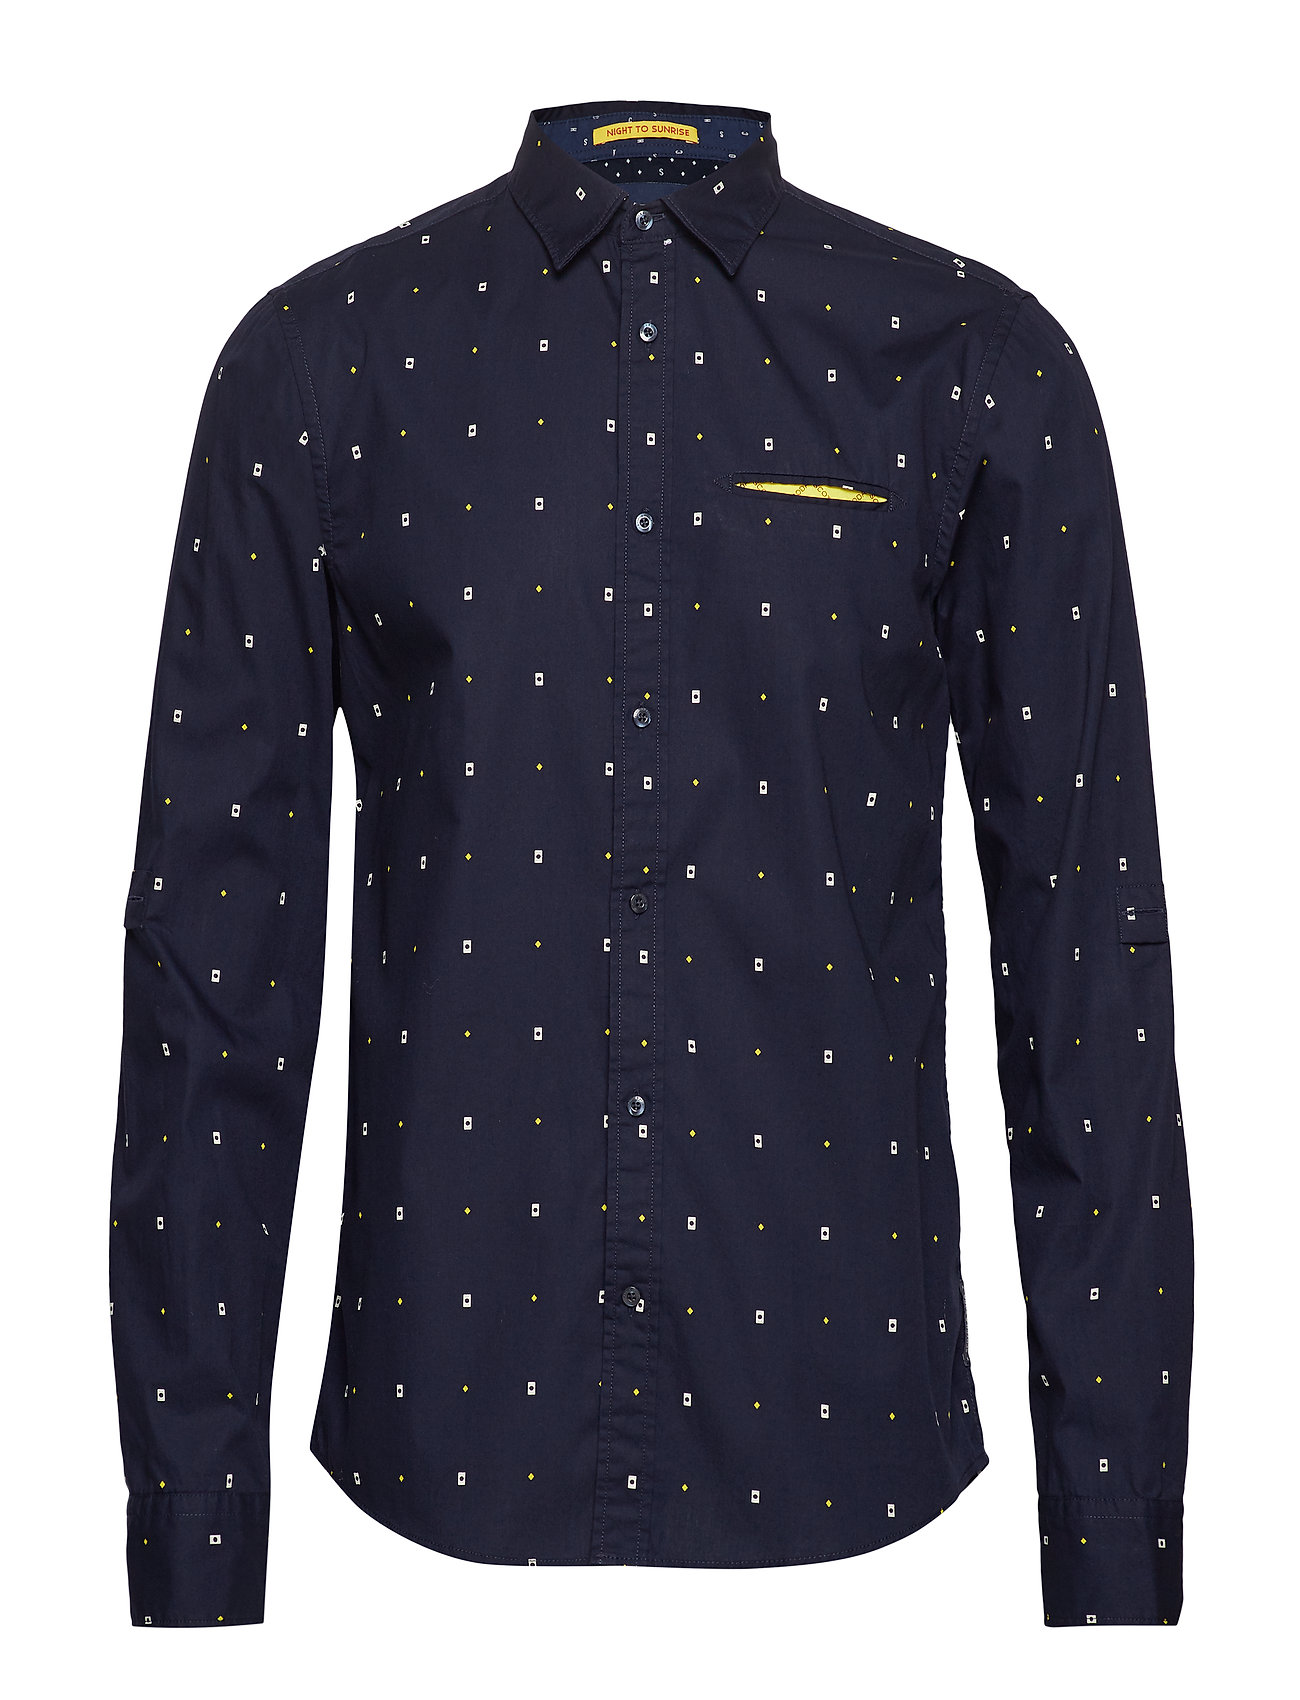 Scotch & Soda REGULAR FIT- Classic all-over printed pochet shirt - COMBO A